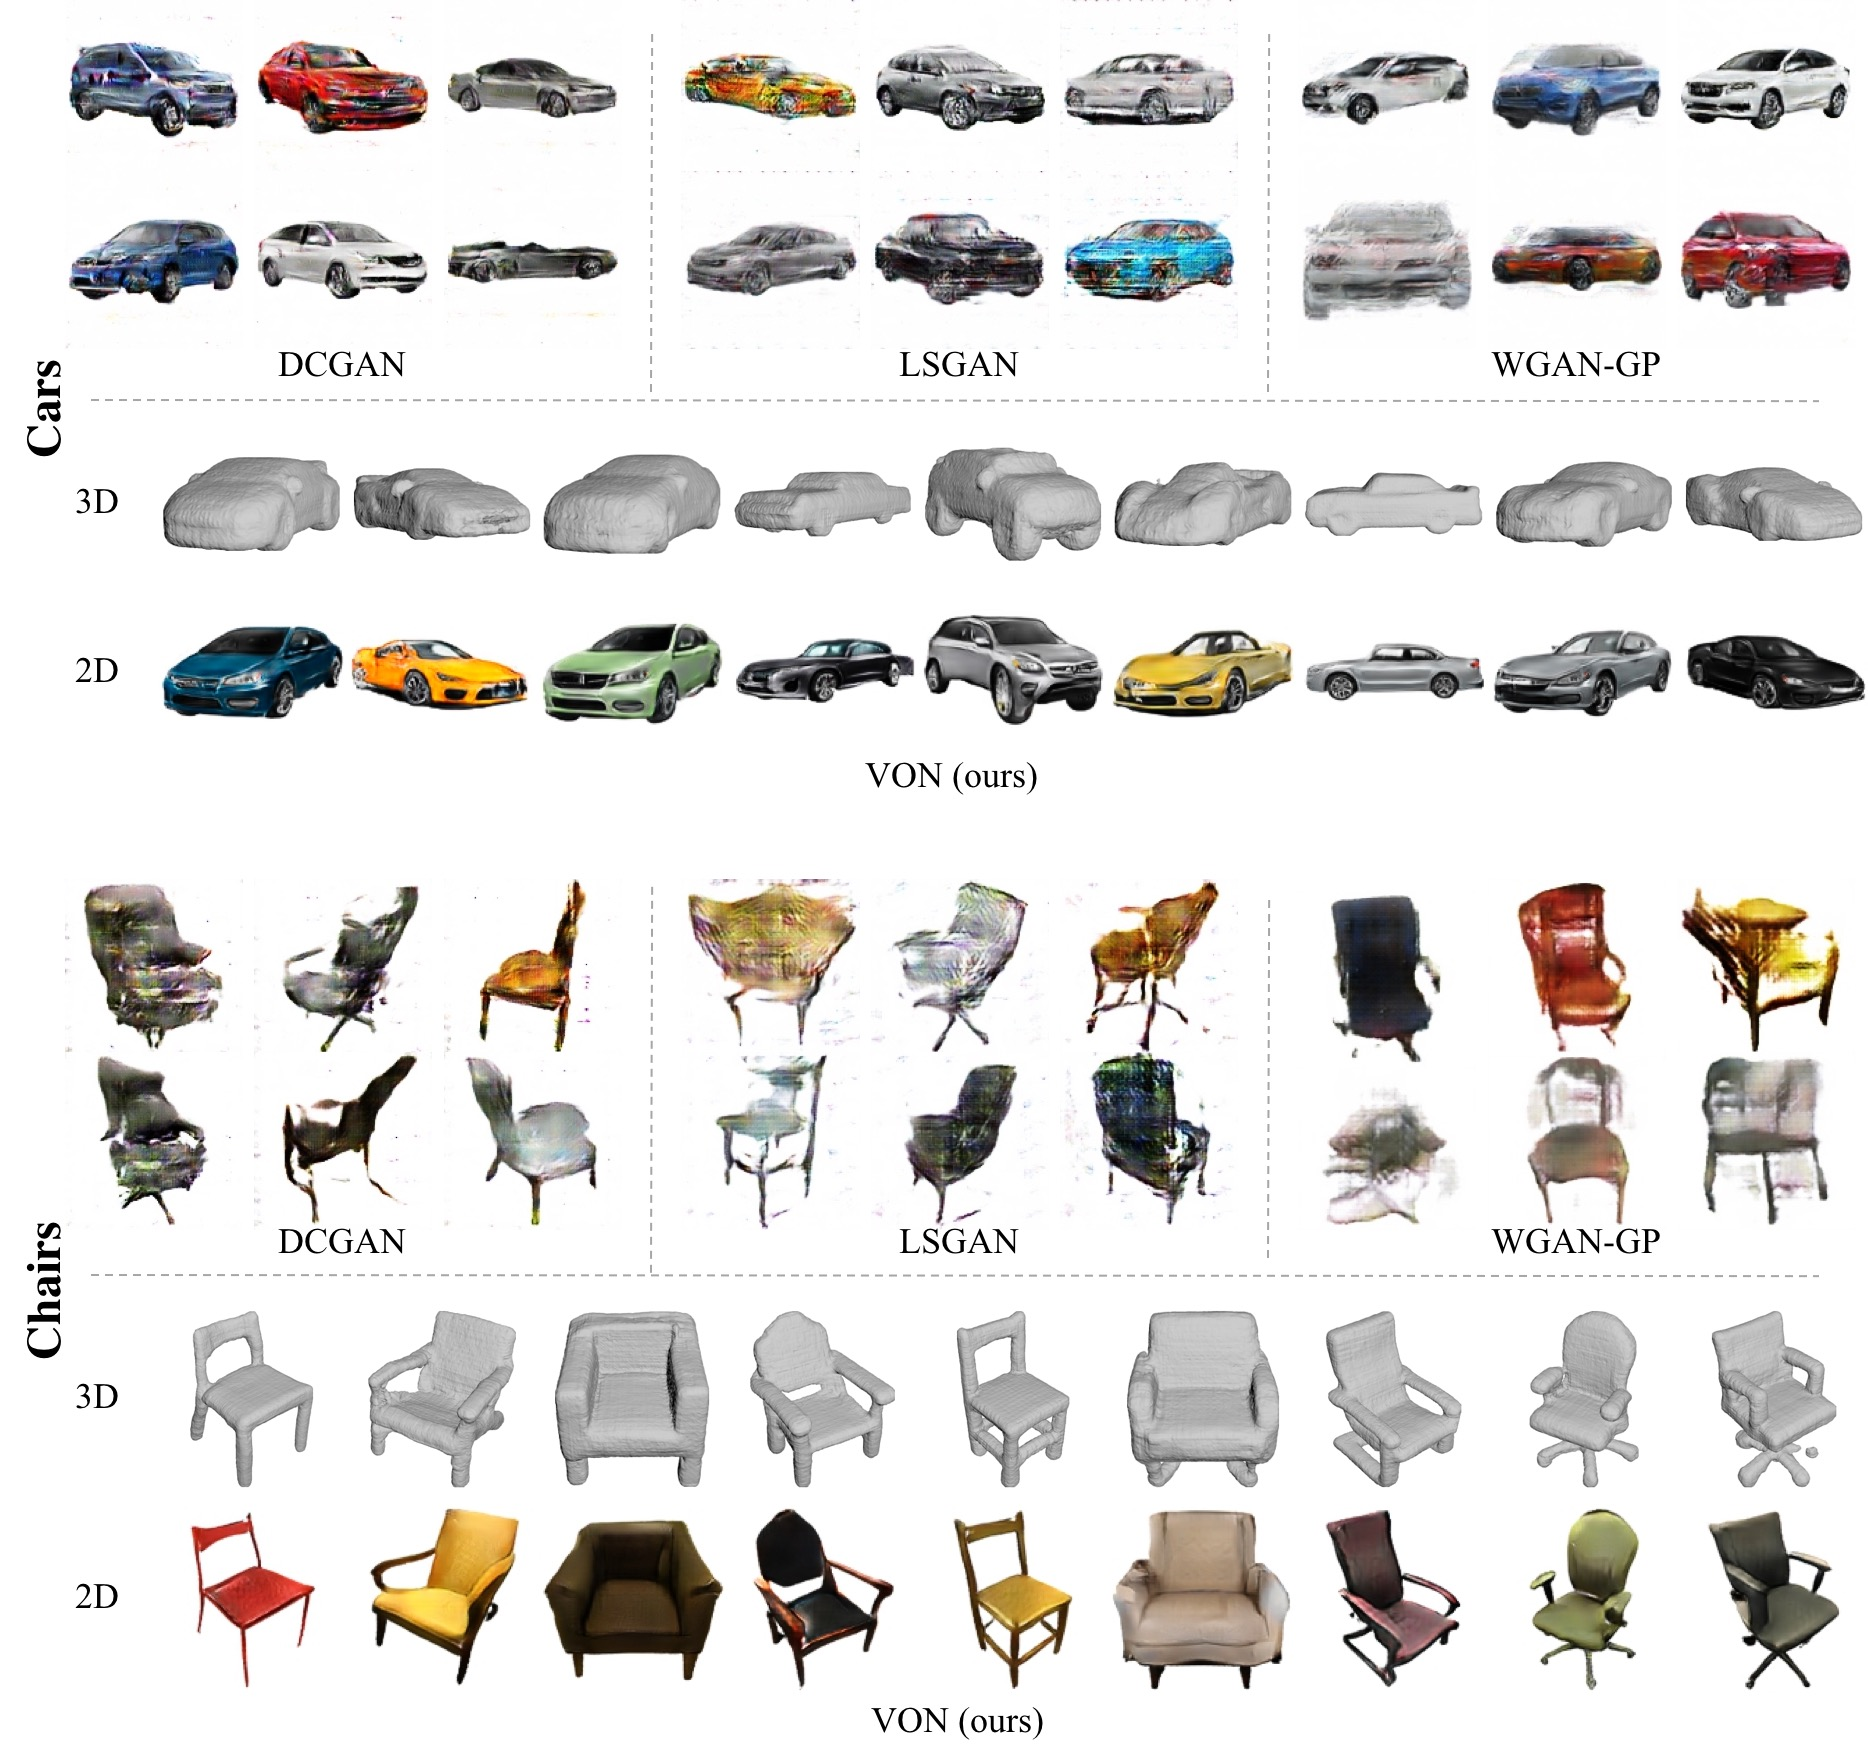 Visual Object Networks